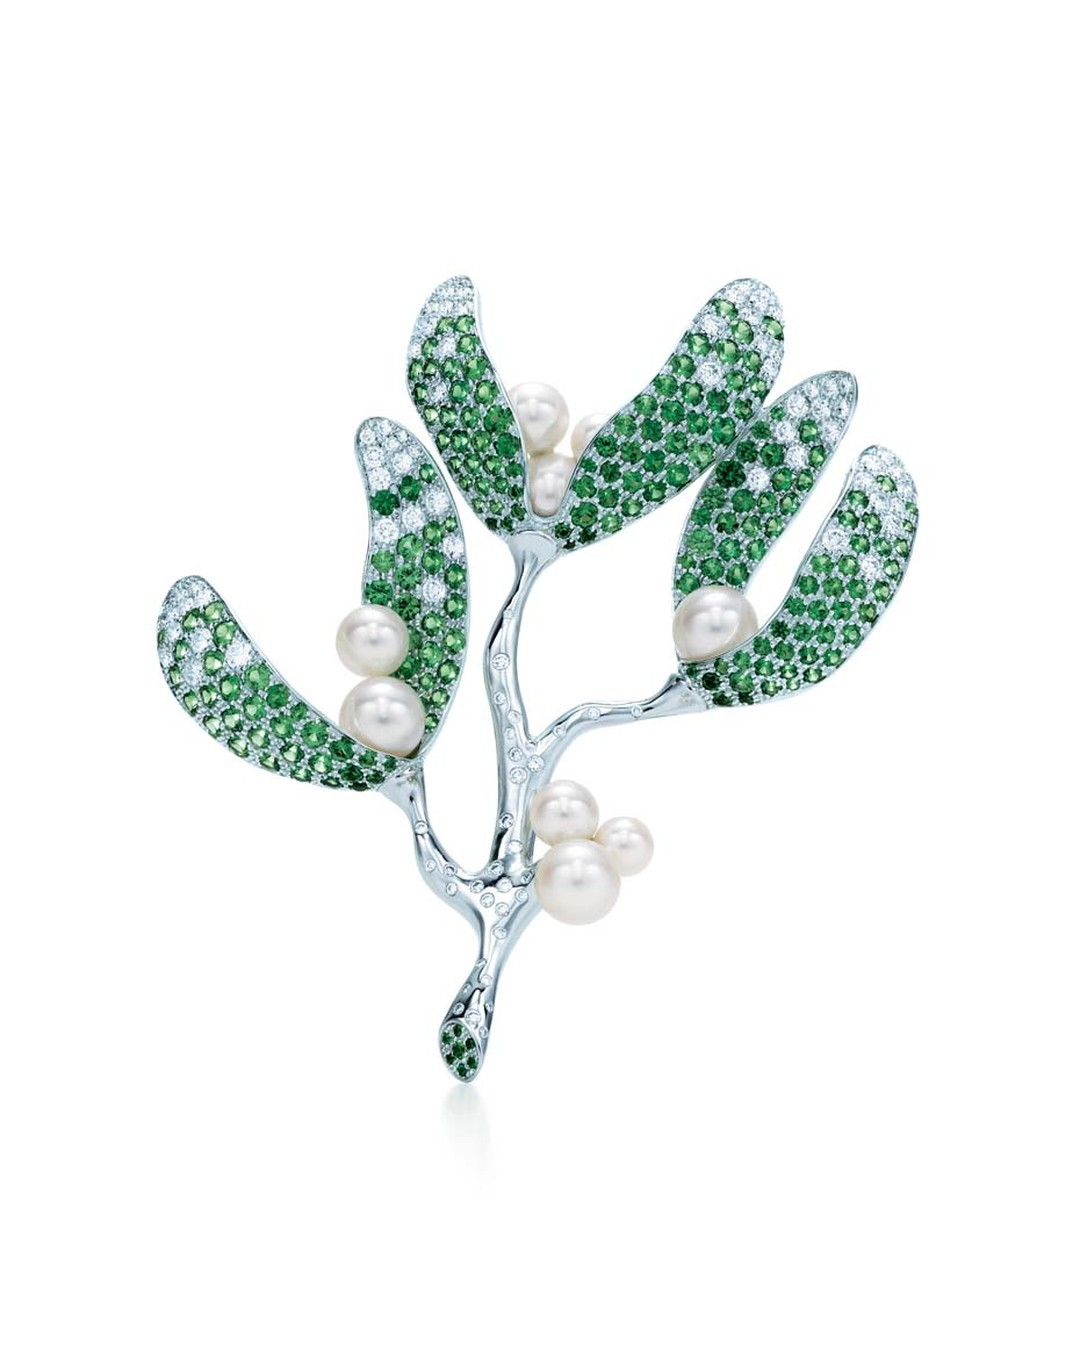 Tiffany & Co. Mistletoe brooch in white gold, with diamonds, tsavorites and South Sea pearls ($53,000).